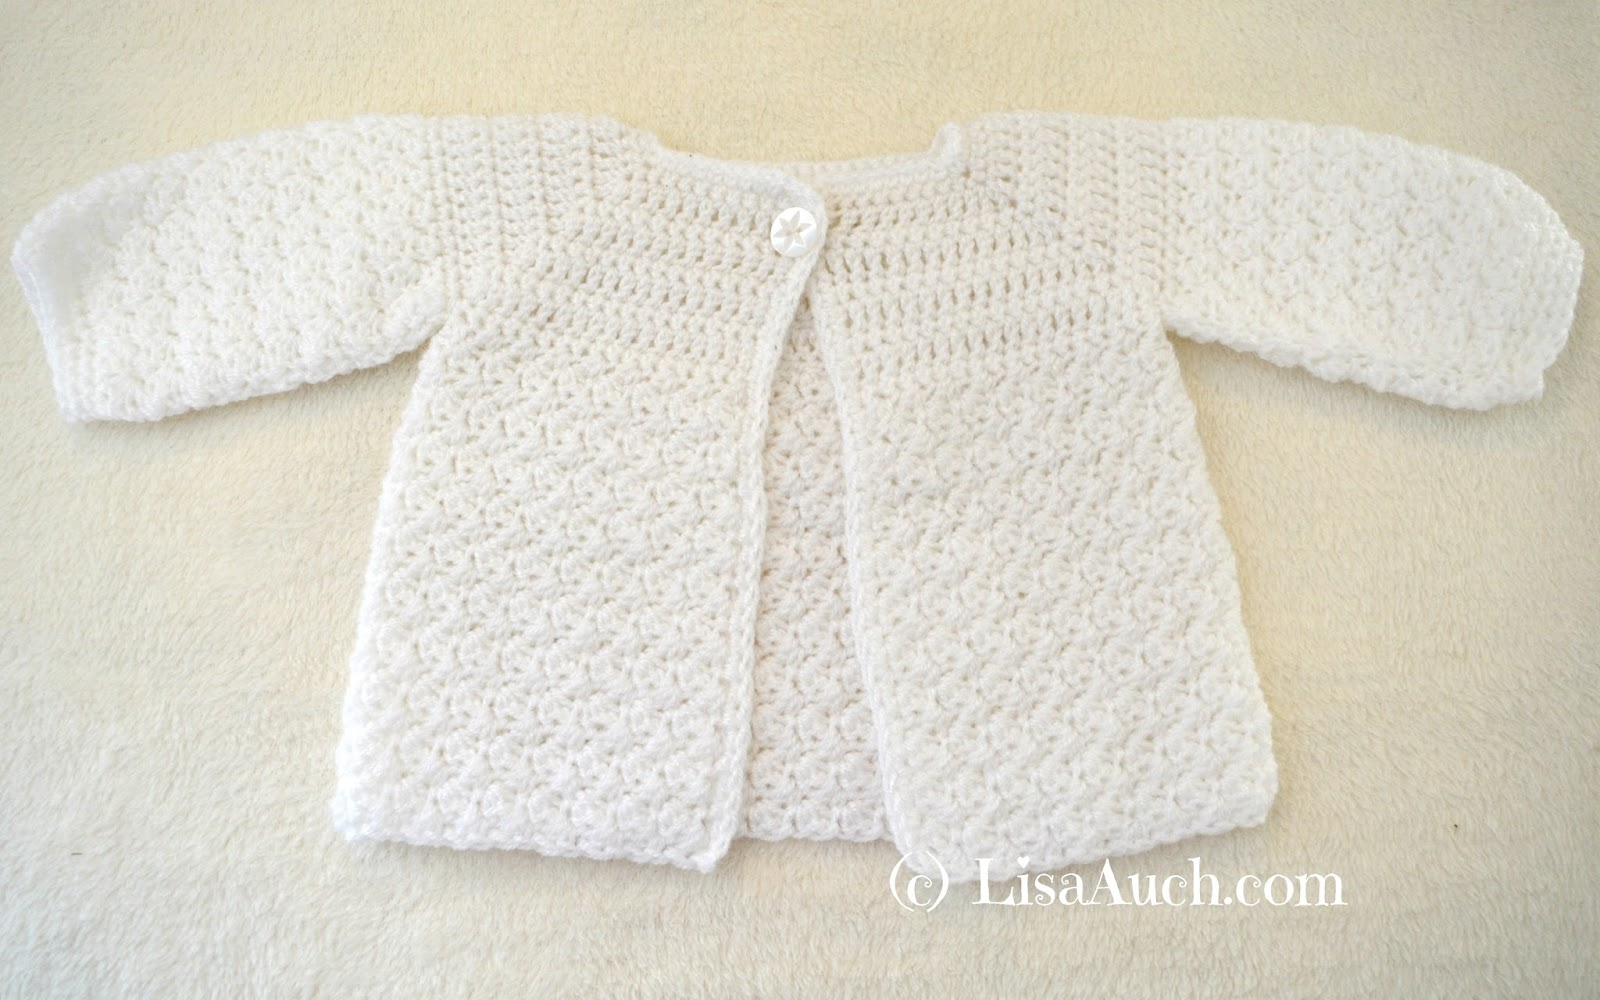 Free Crochet Patterns and Designs by LisaAuch: Crochet Baby Cardigan ...